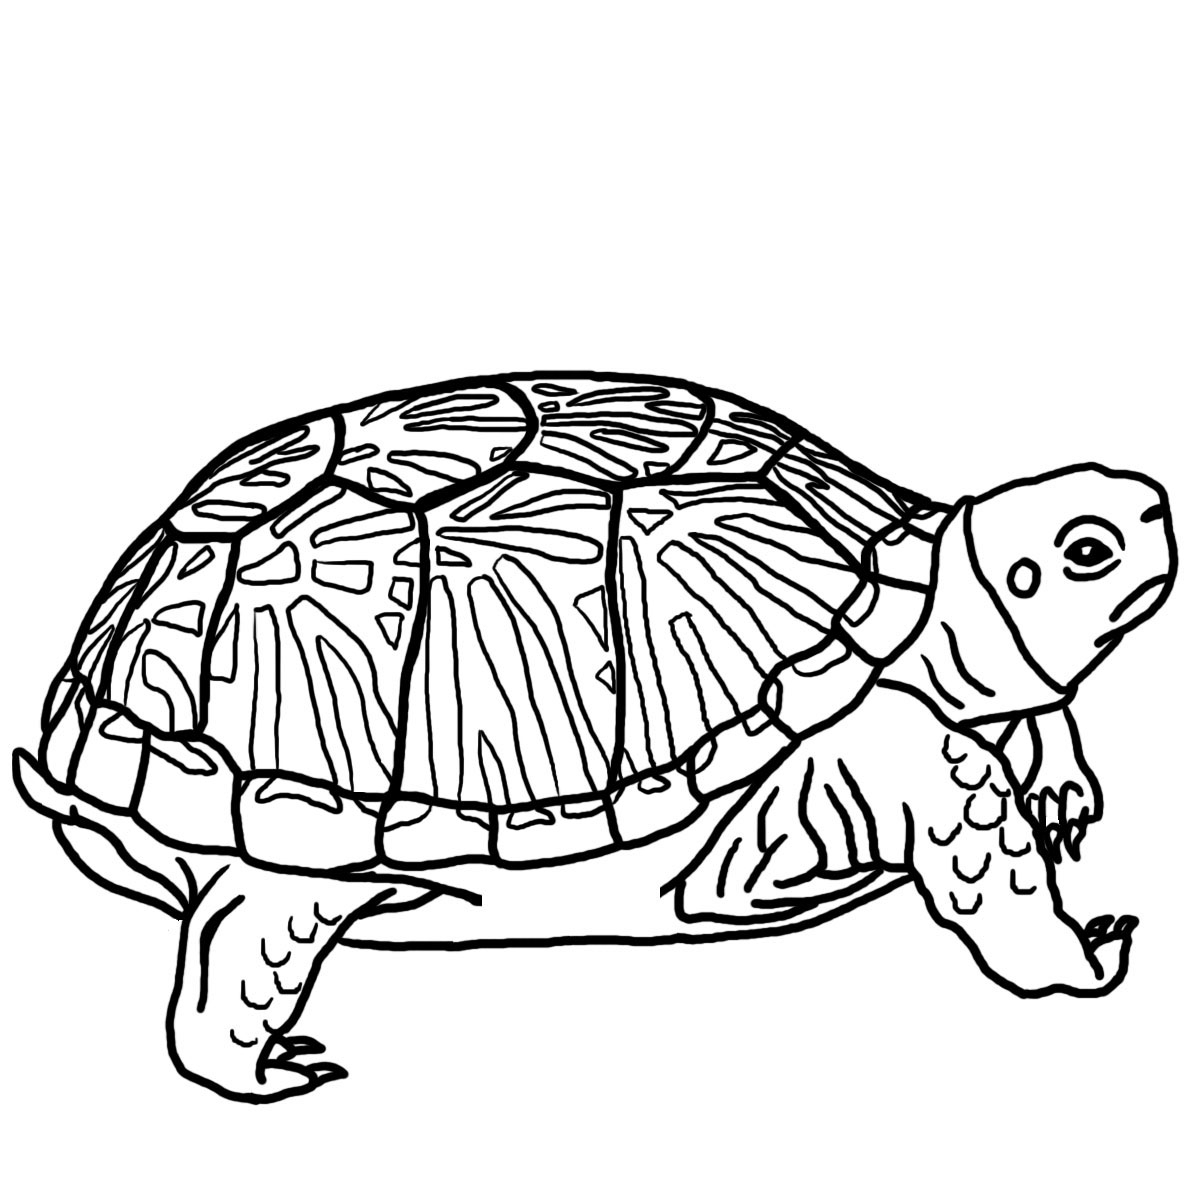 24 Turtle Coloring Pages Printable Images | FREE COLORING PAGES - Part 2